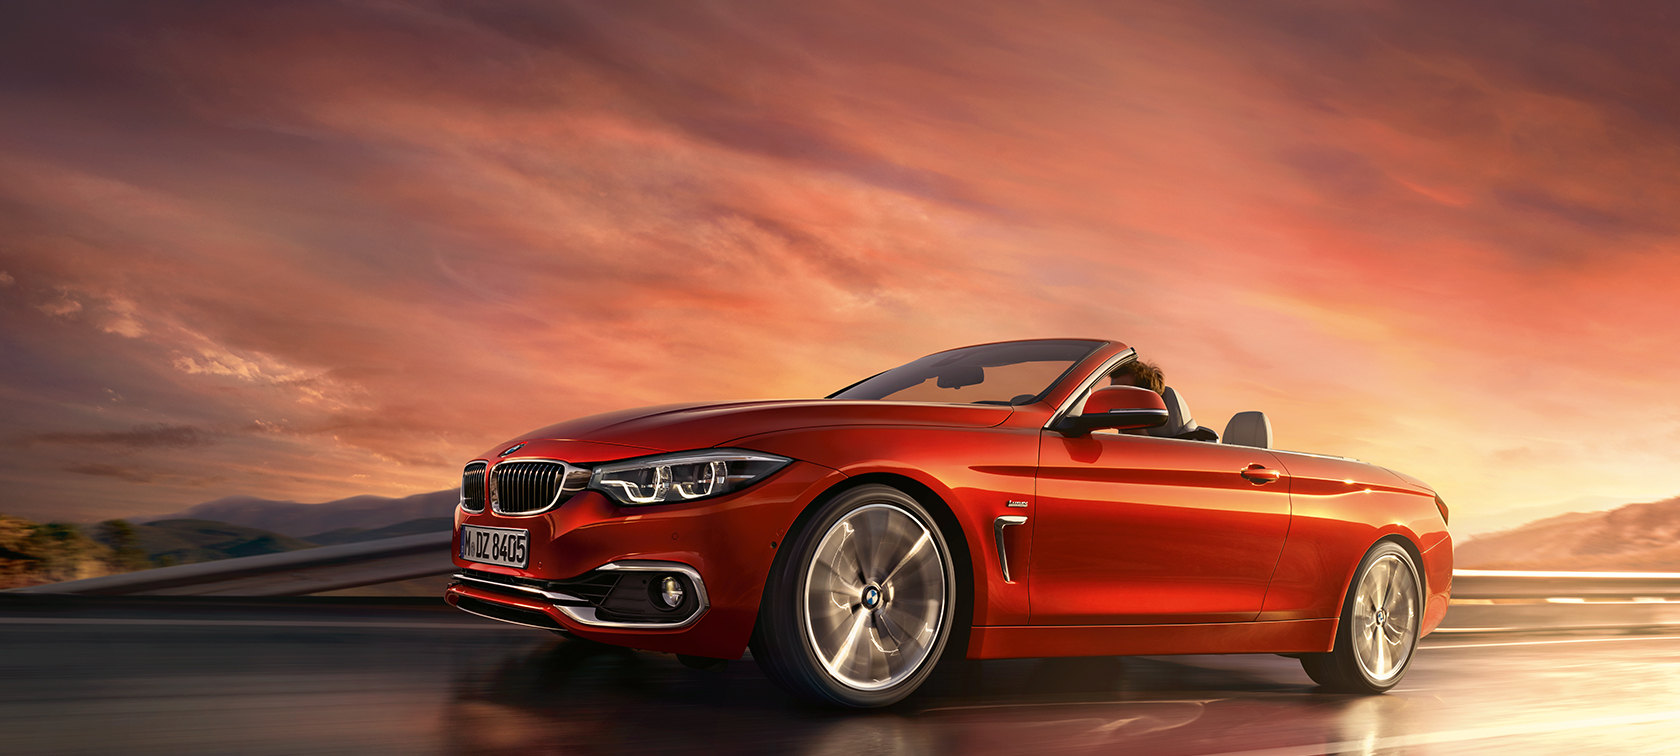 BMW 4 Series Cabriolet driving shot